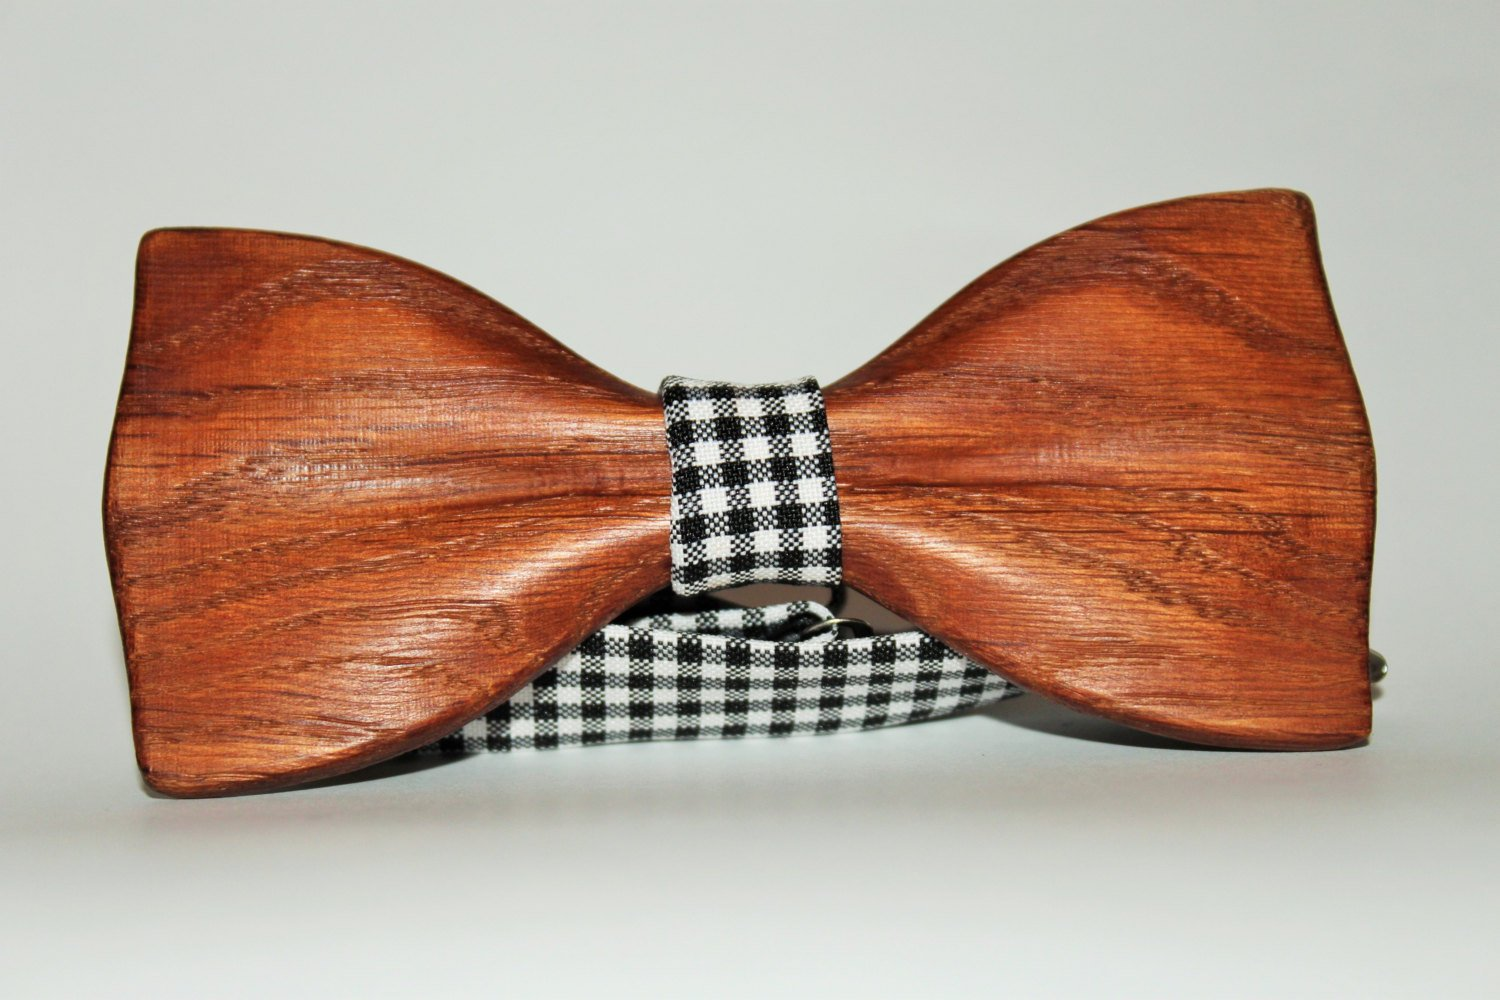 Black bow tie for men from wood with custom fabric